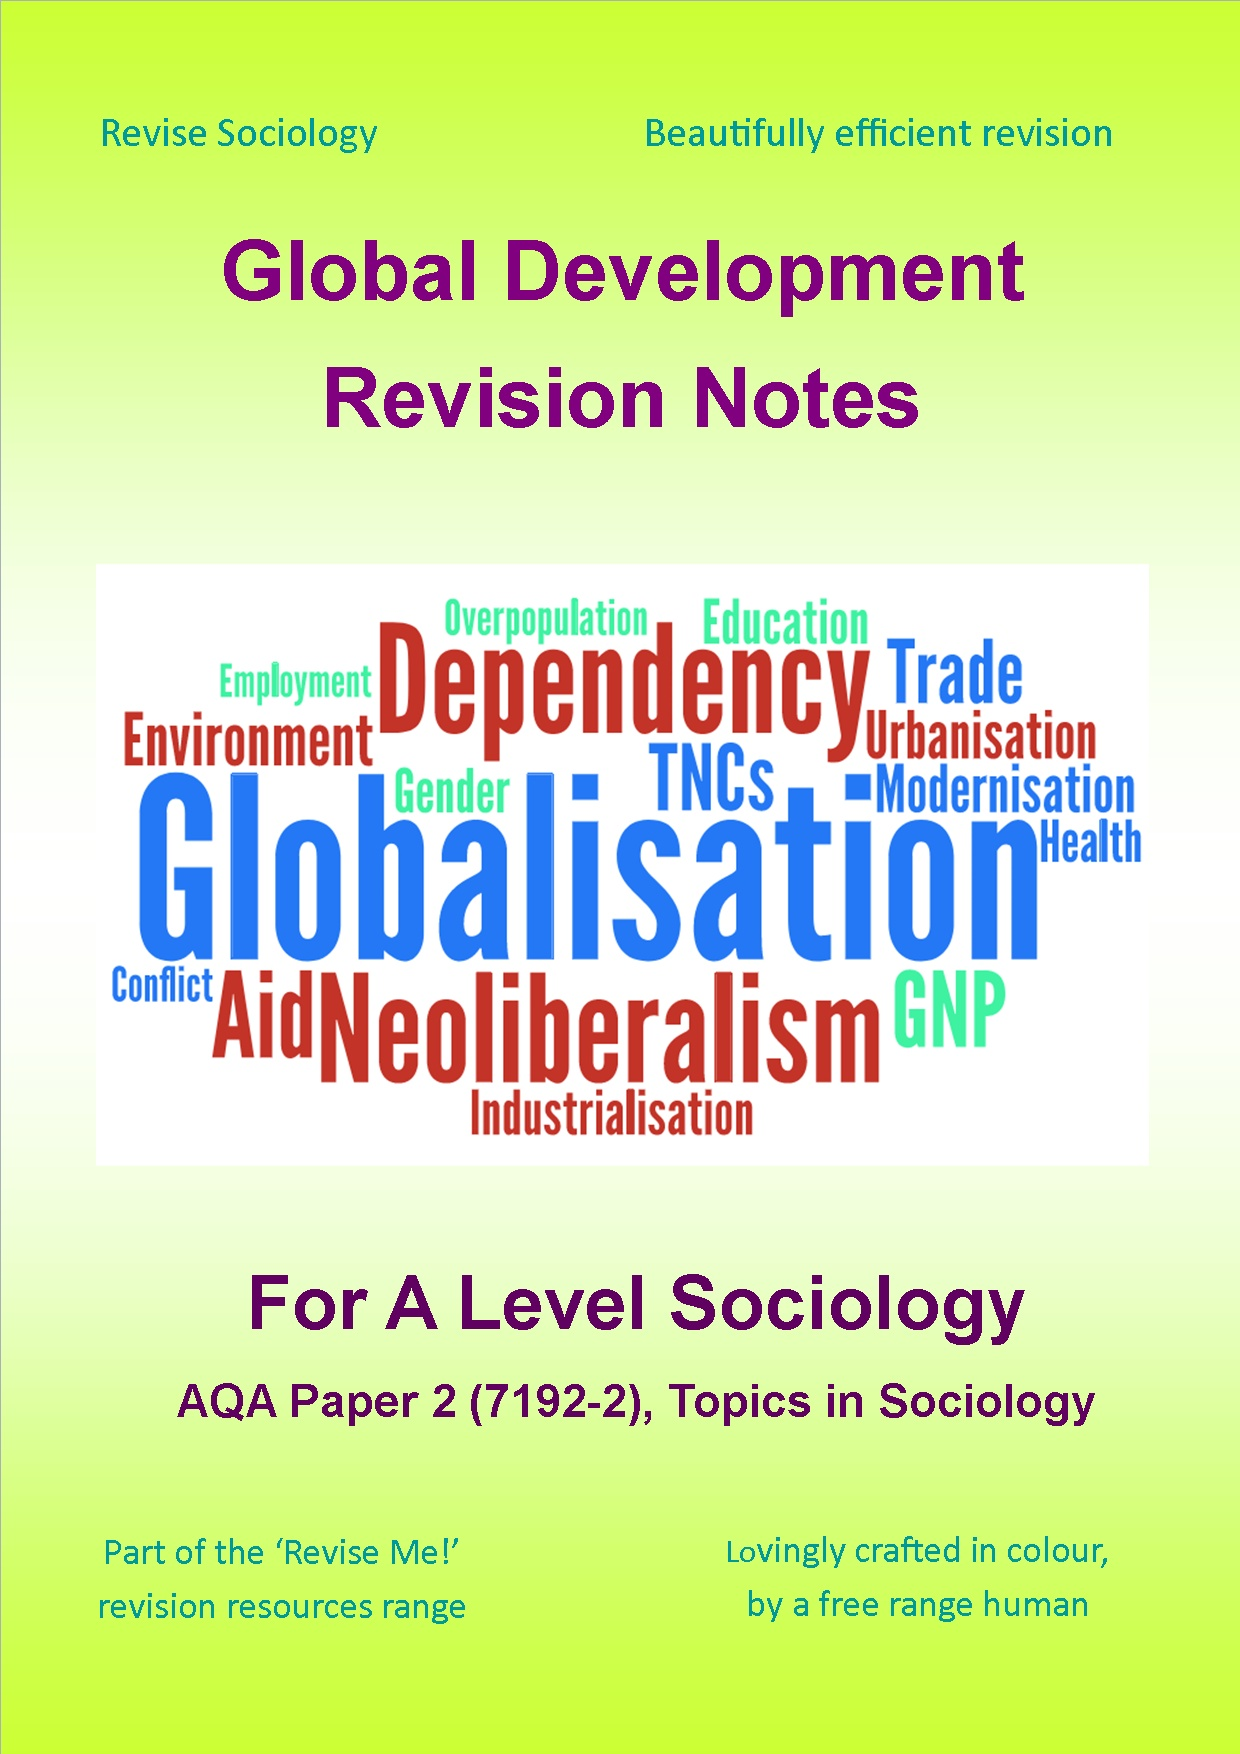 Global Development Revision Notes For A Level Sociolog